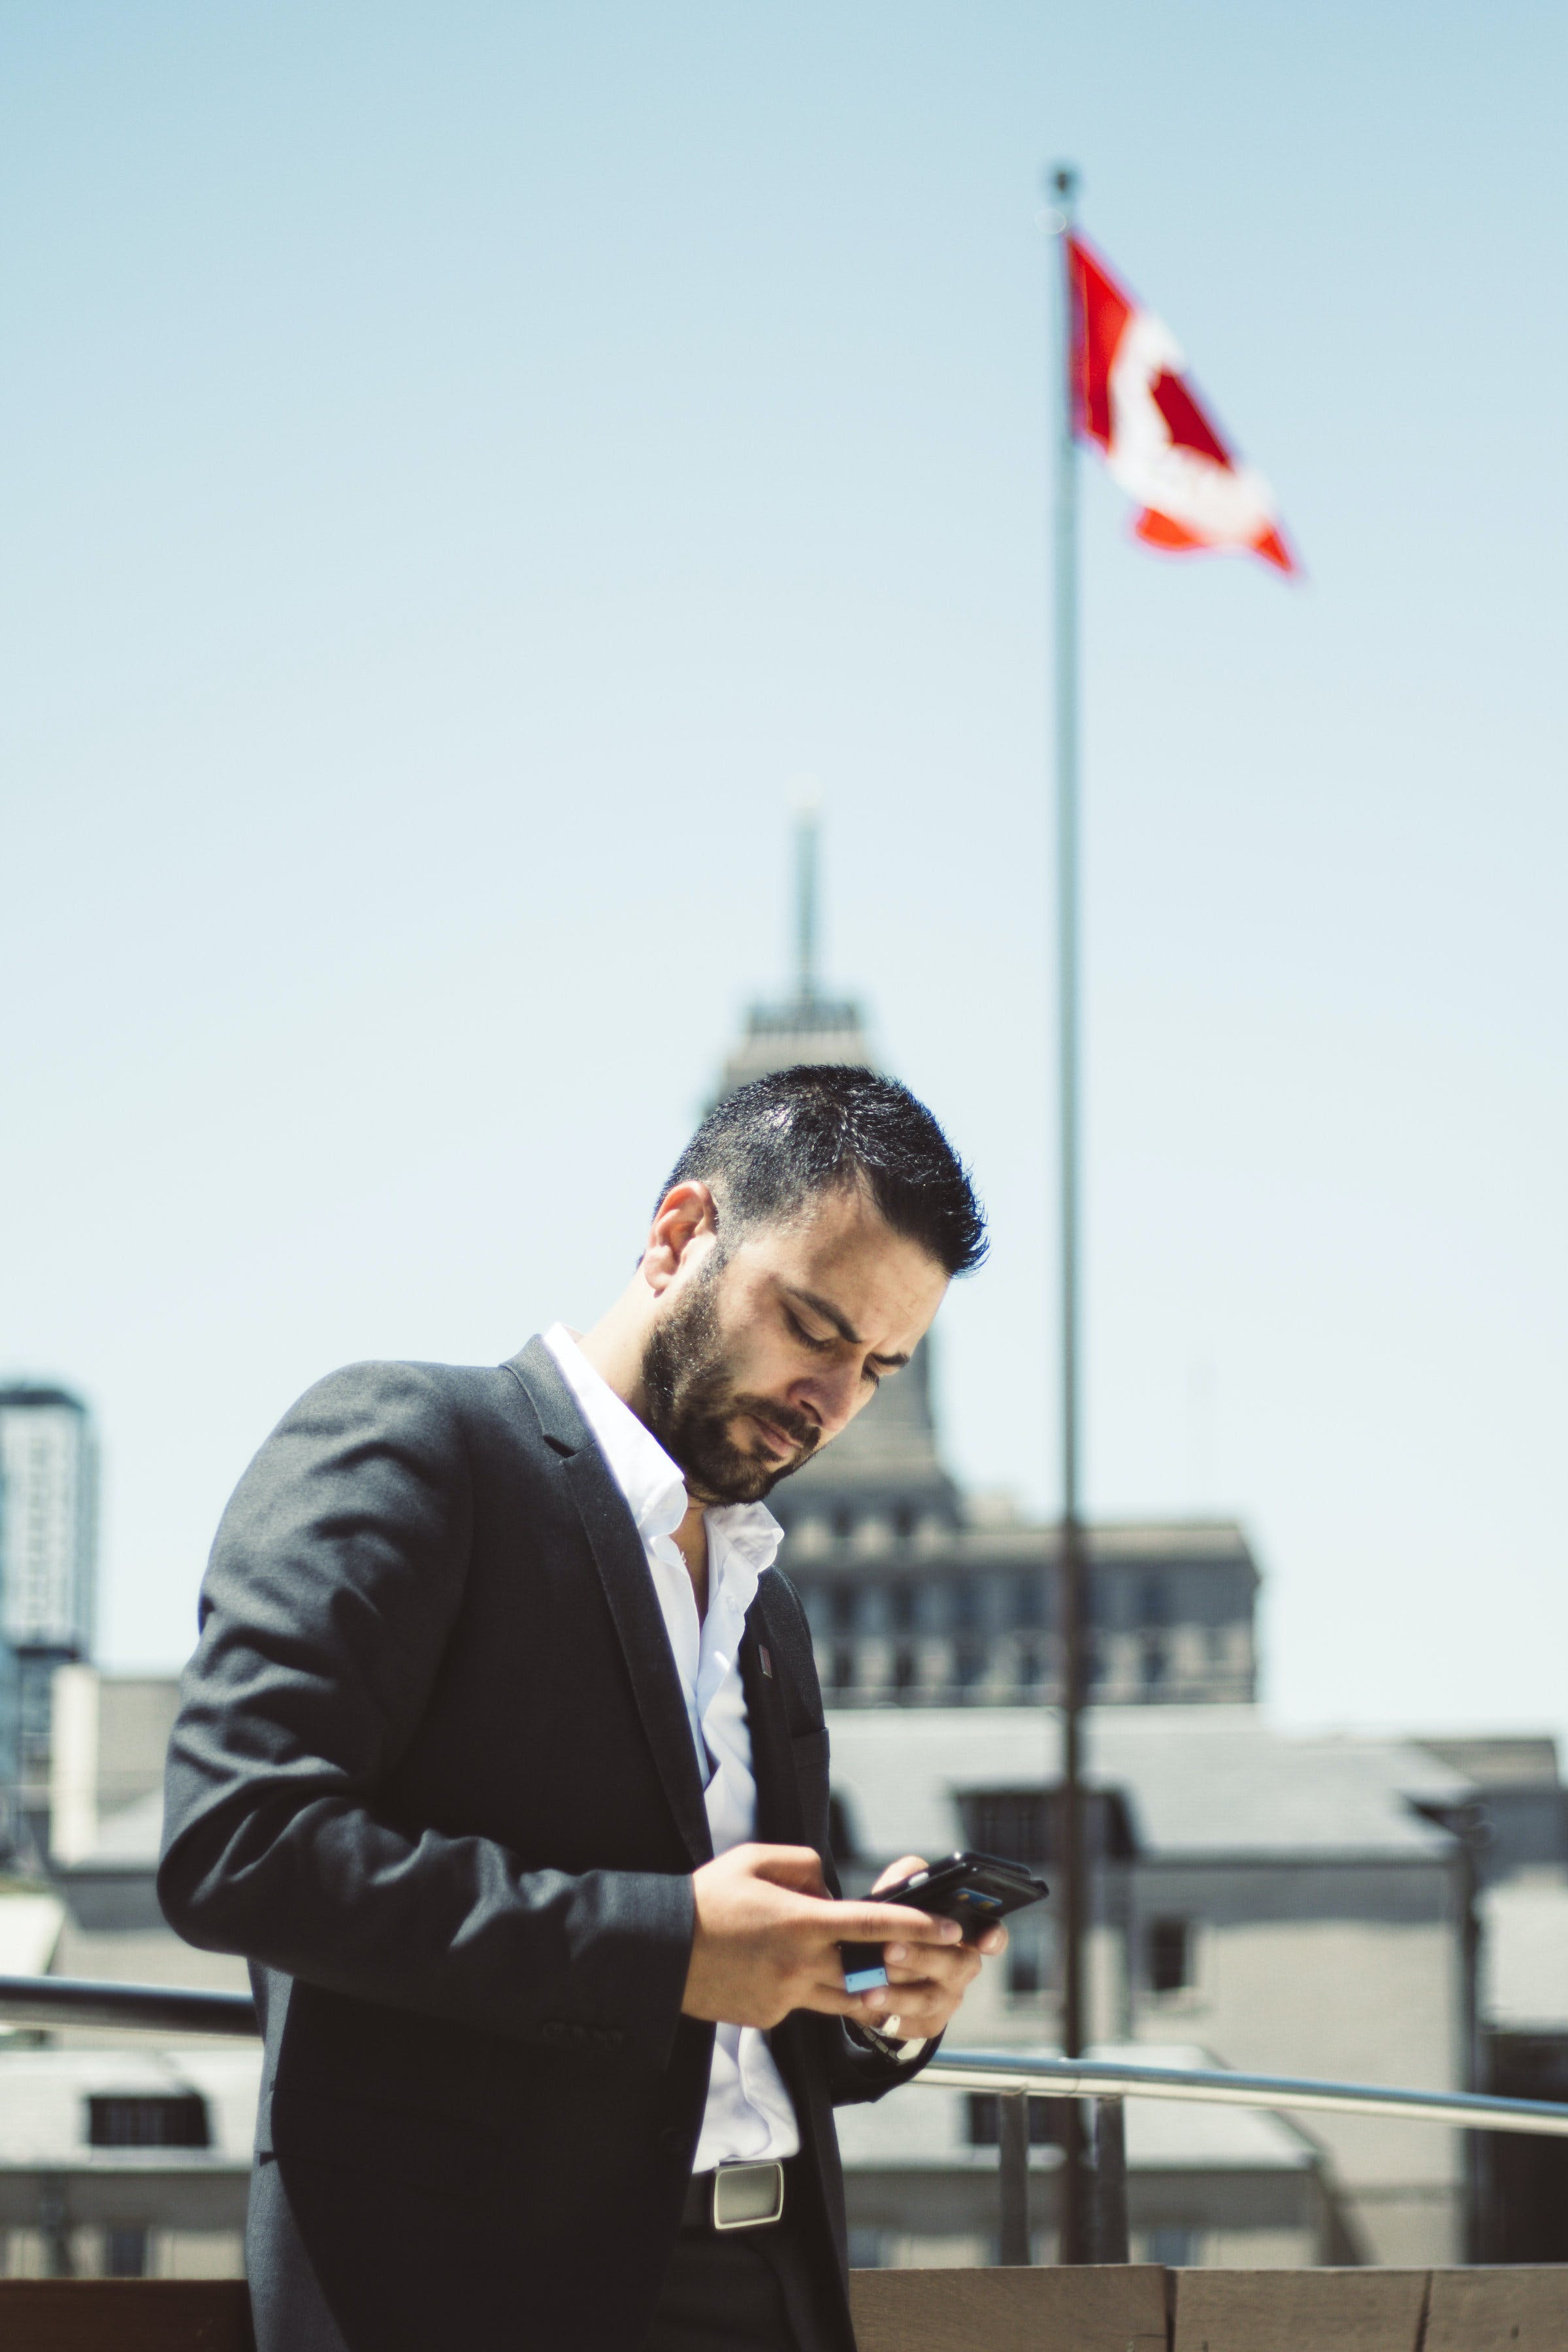 Man in Suit Jacket Holding Phone